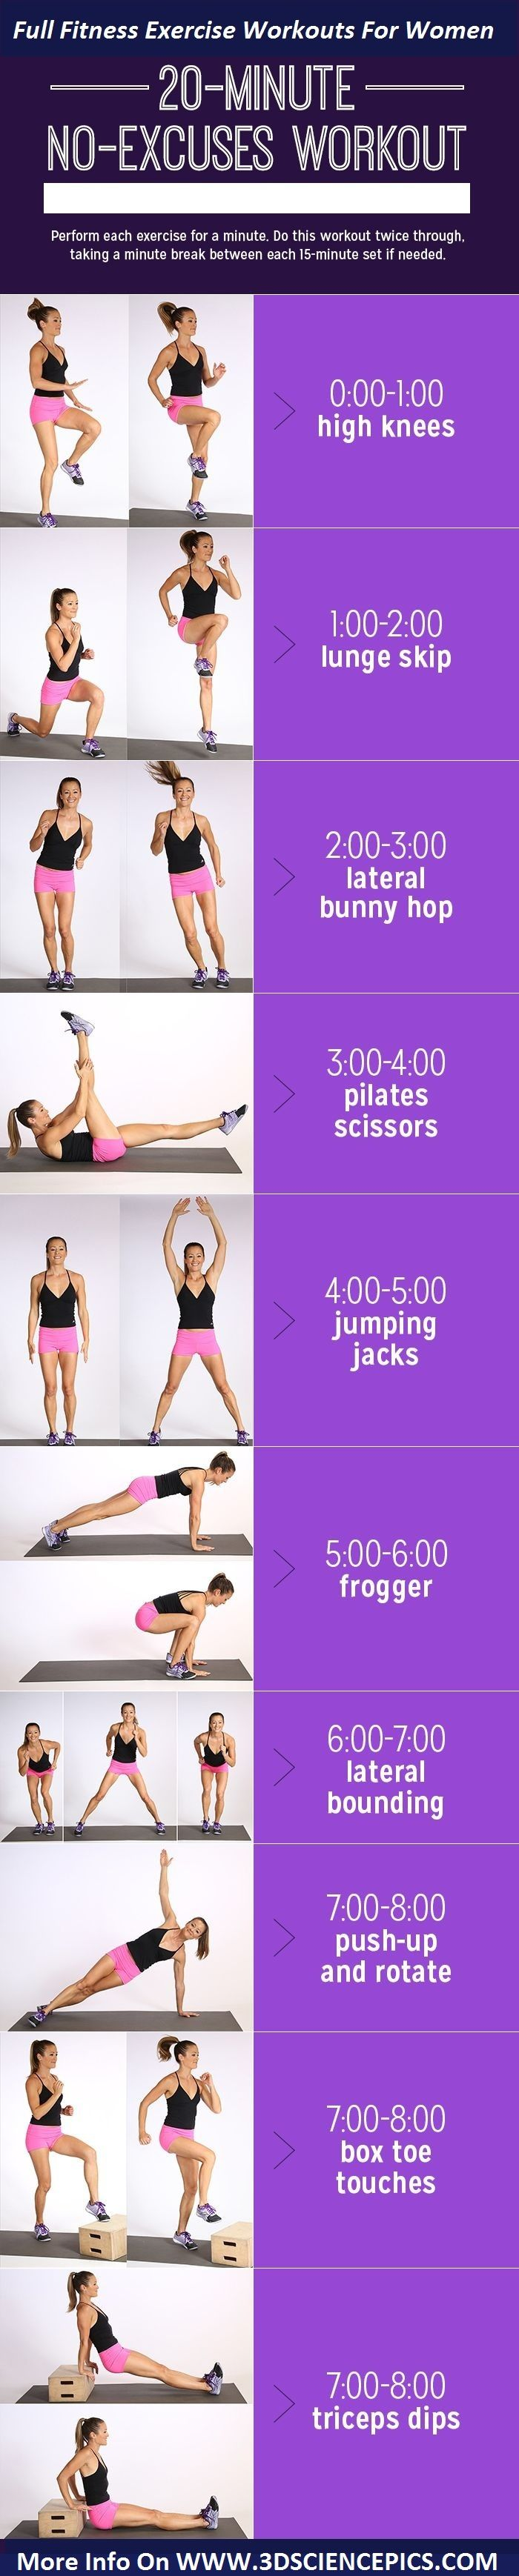 Fitness Workouts For Women Everyday Exercises